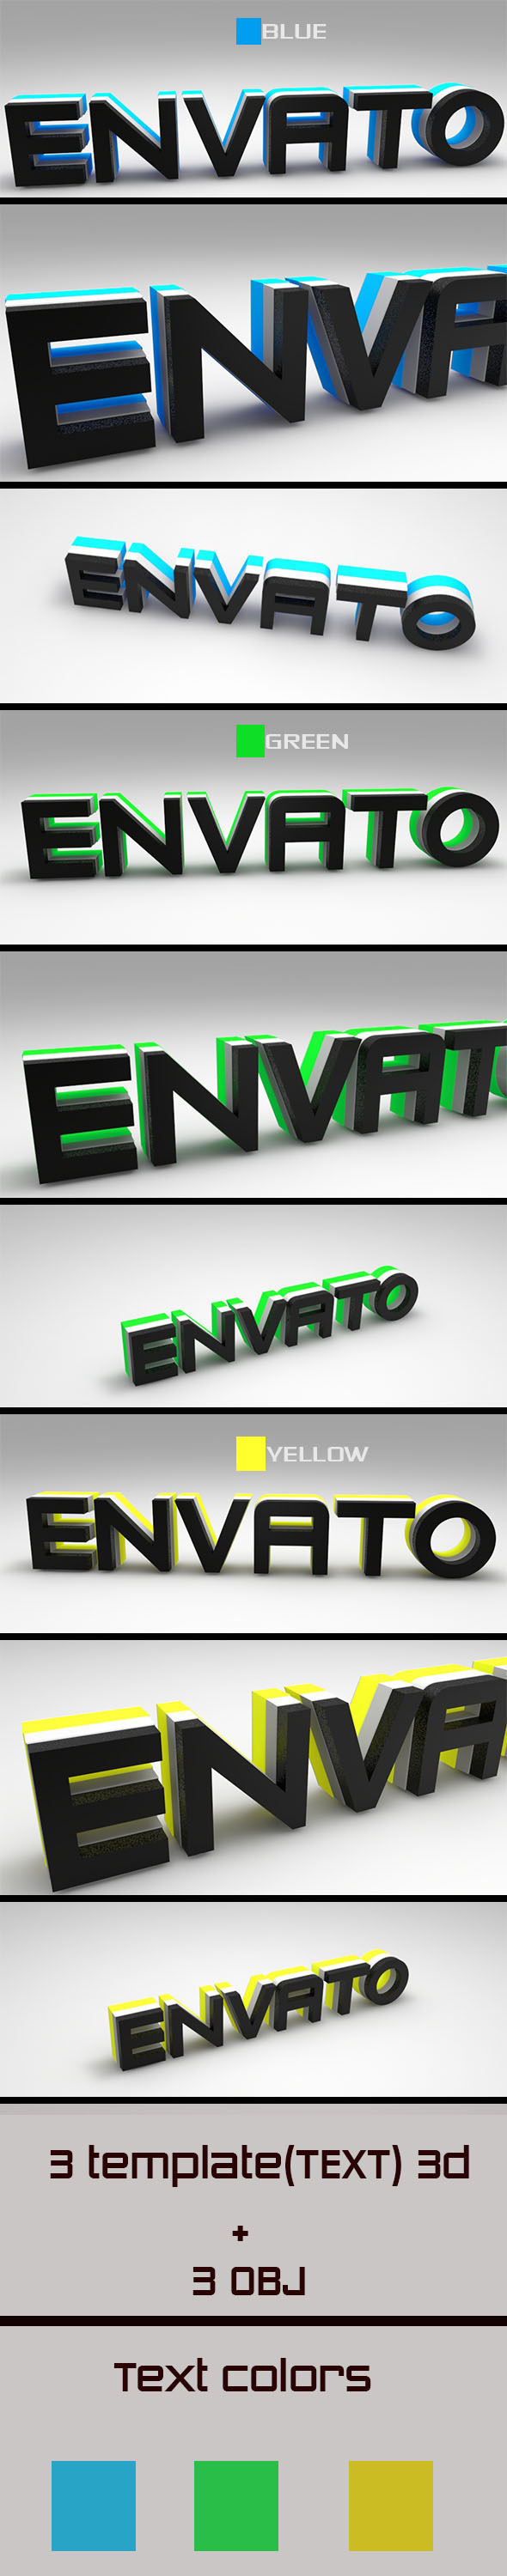 3DOcean Text 3D Envato Blue-Green-Yellow 10921283